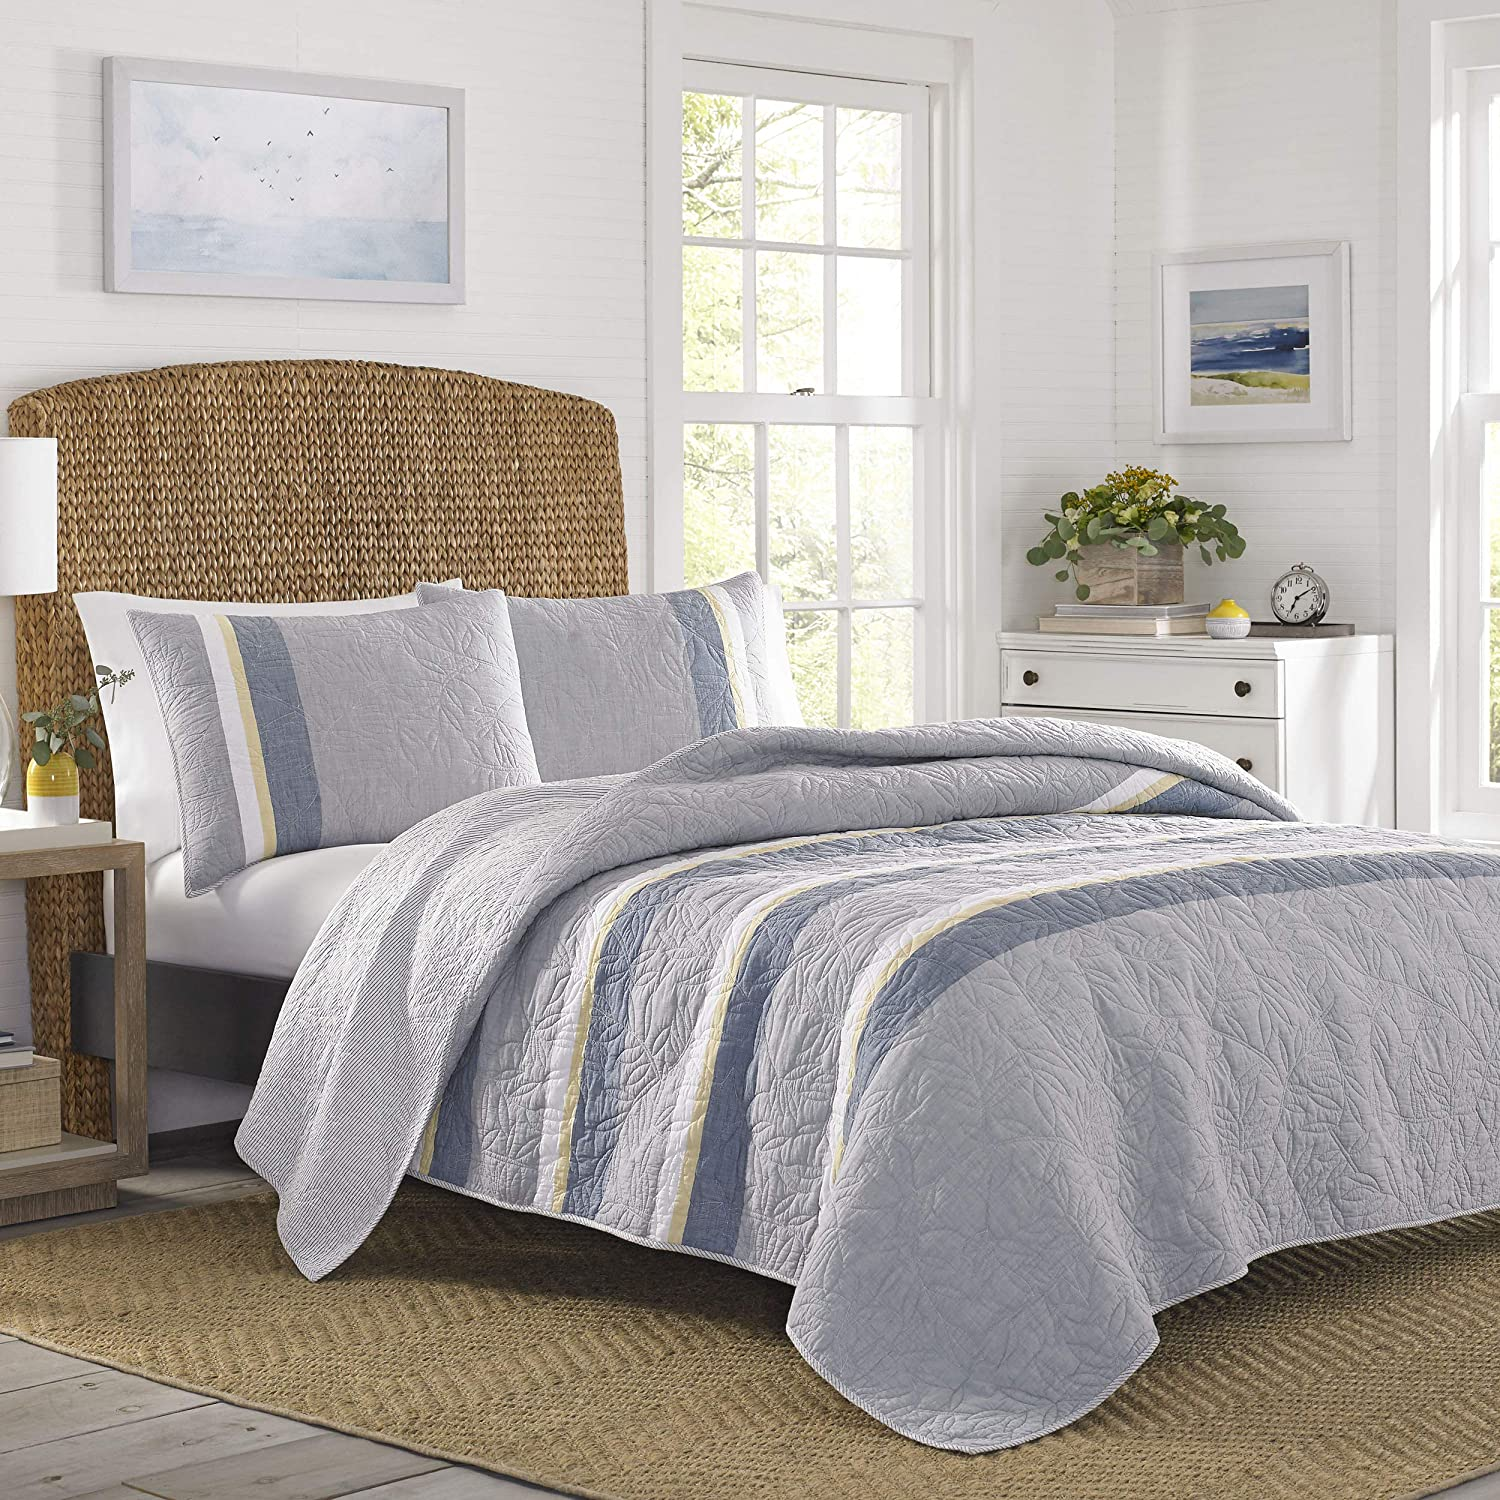 Nautica Sea Palms Quilt, King, Grey